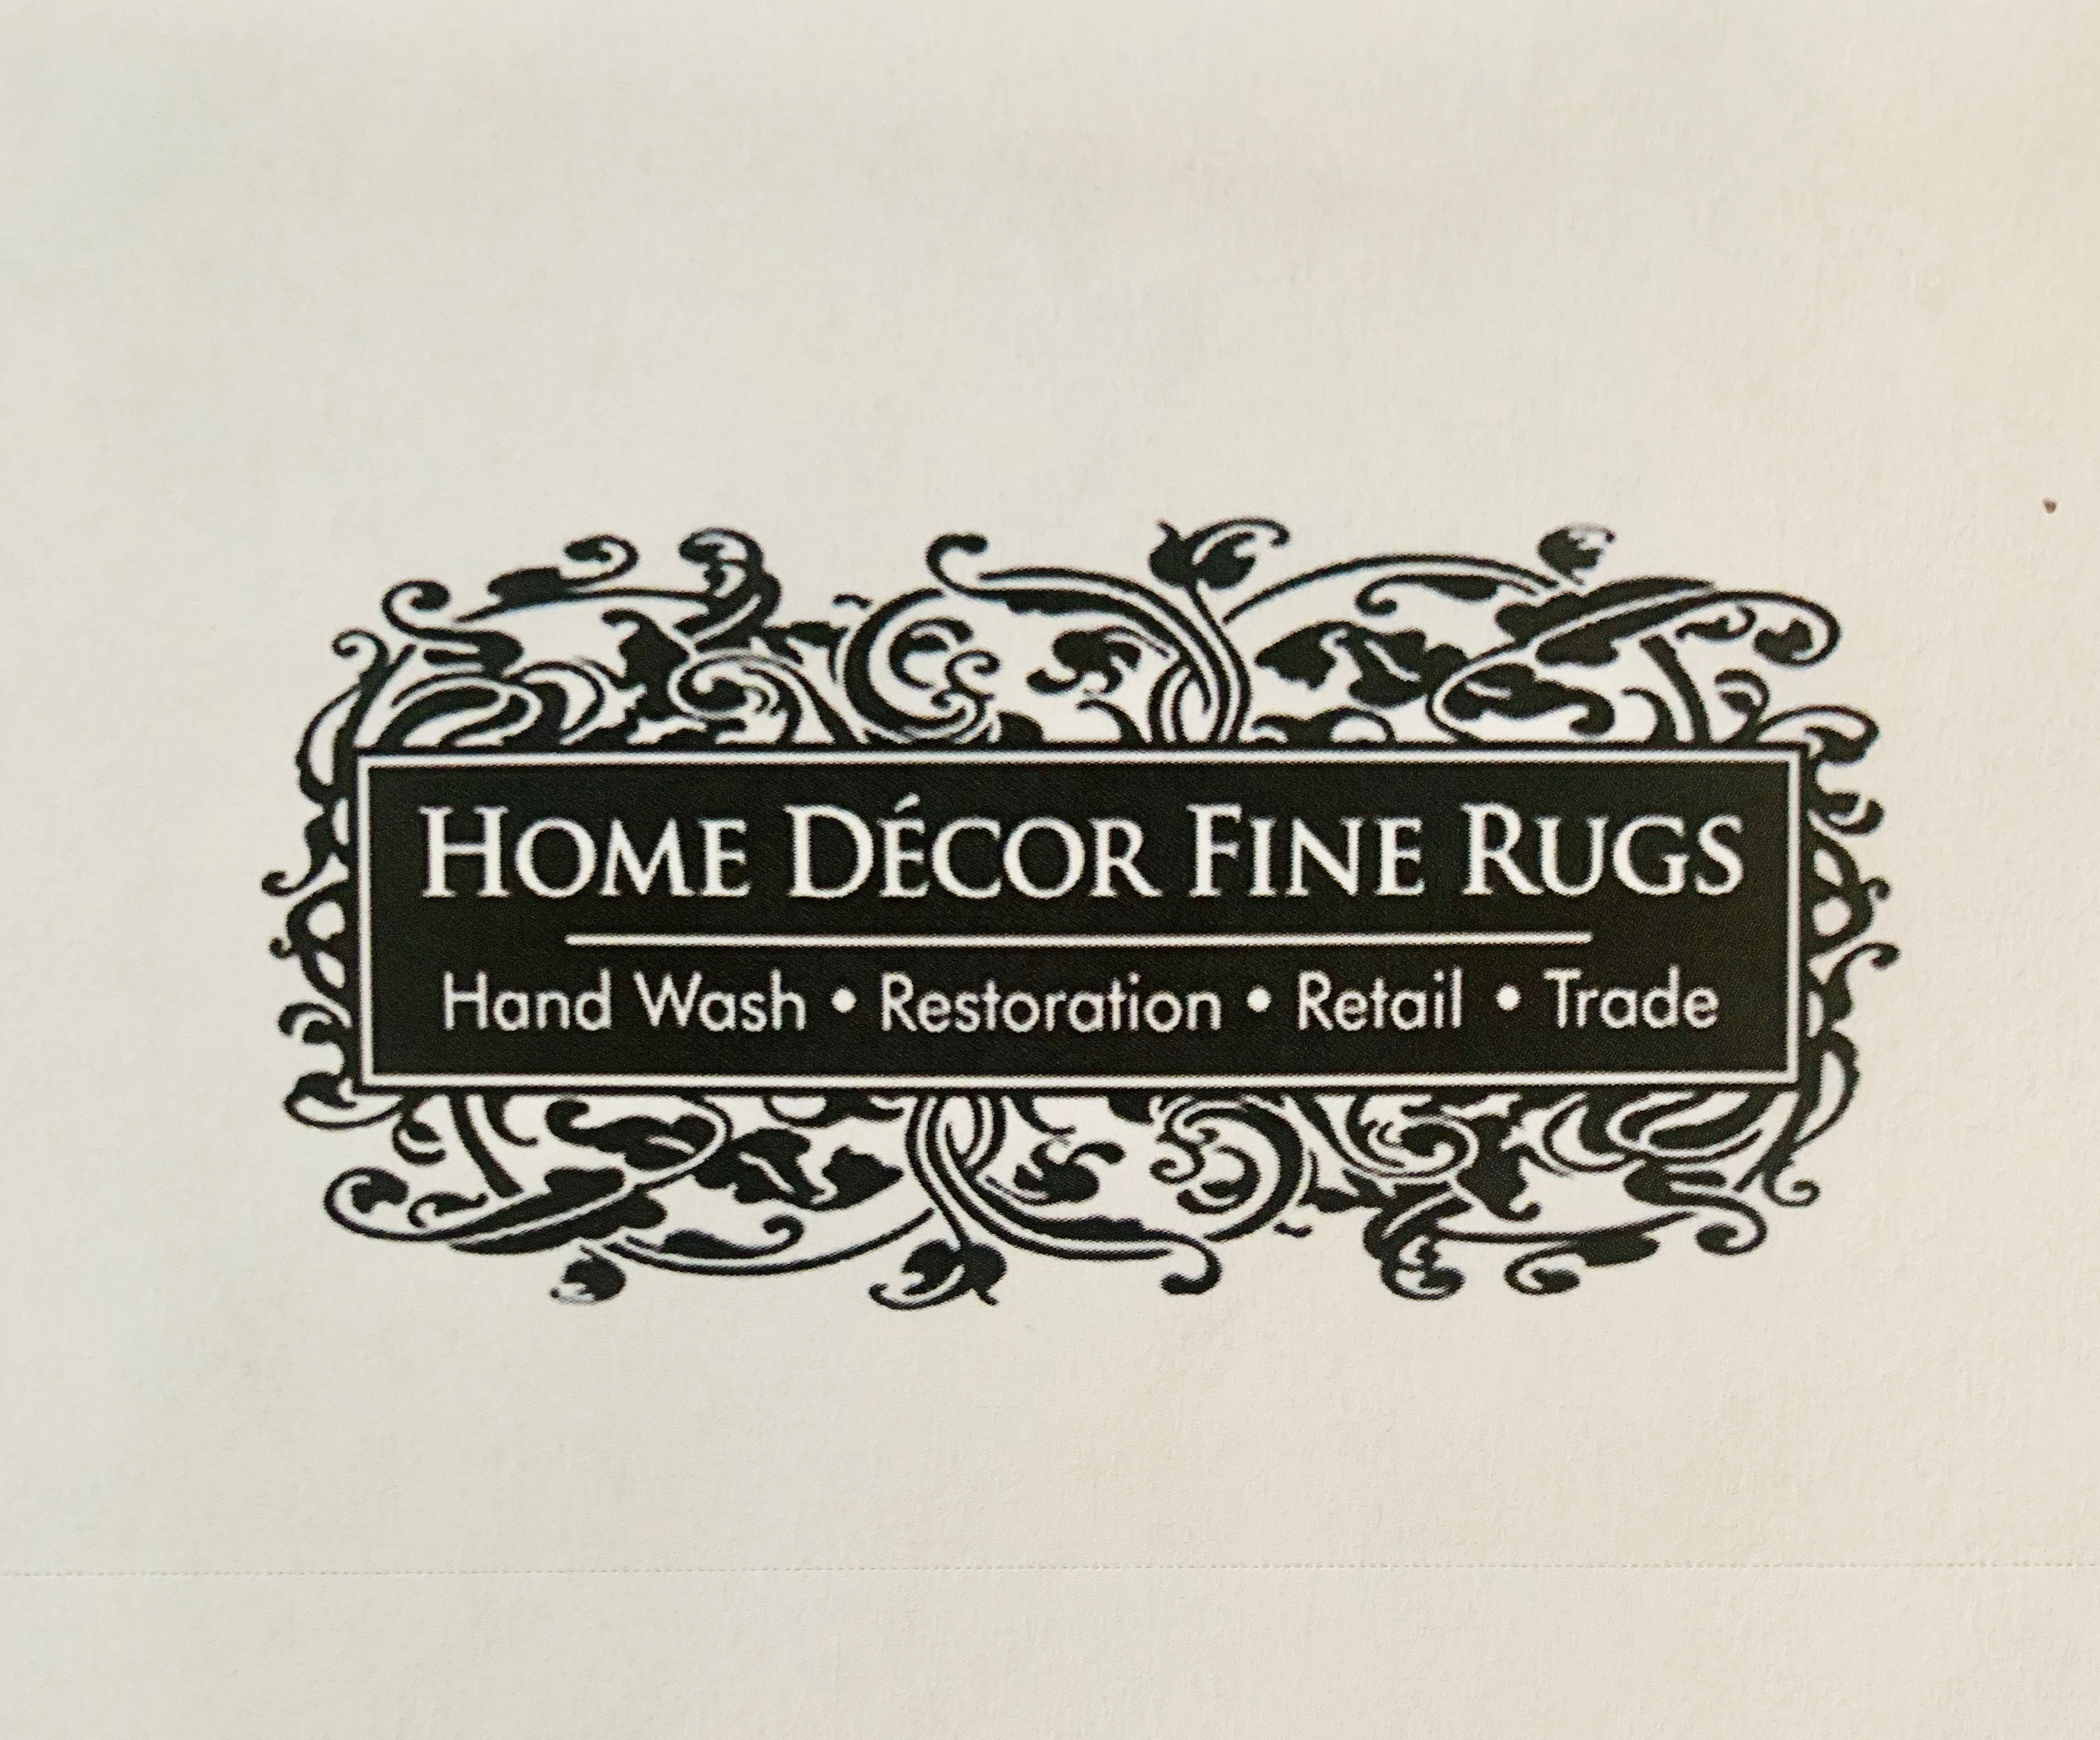 San Diego Rug Cleaning and Rug Repair Services